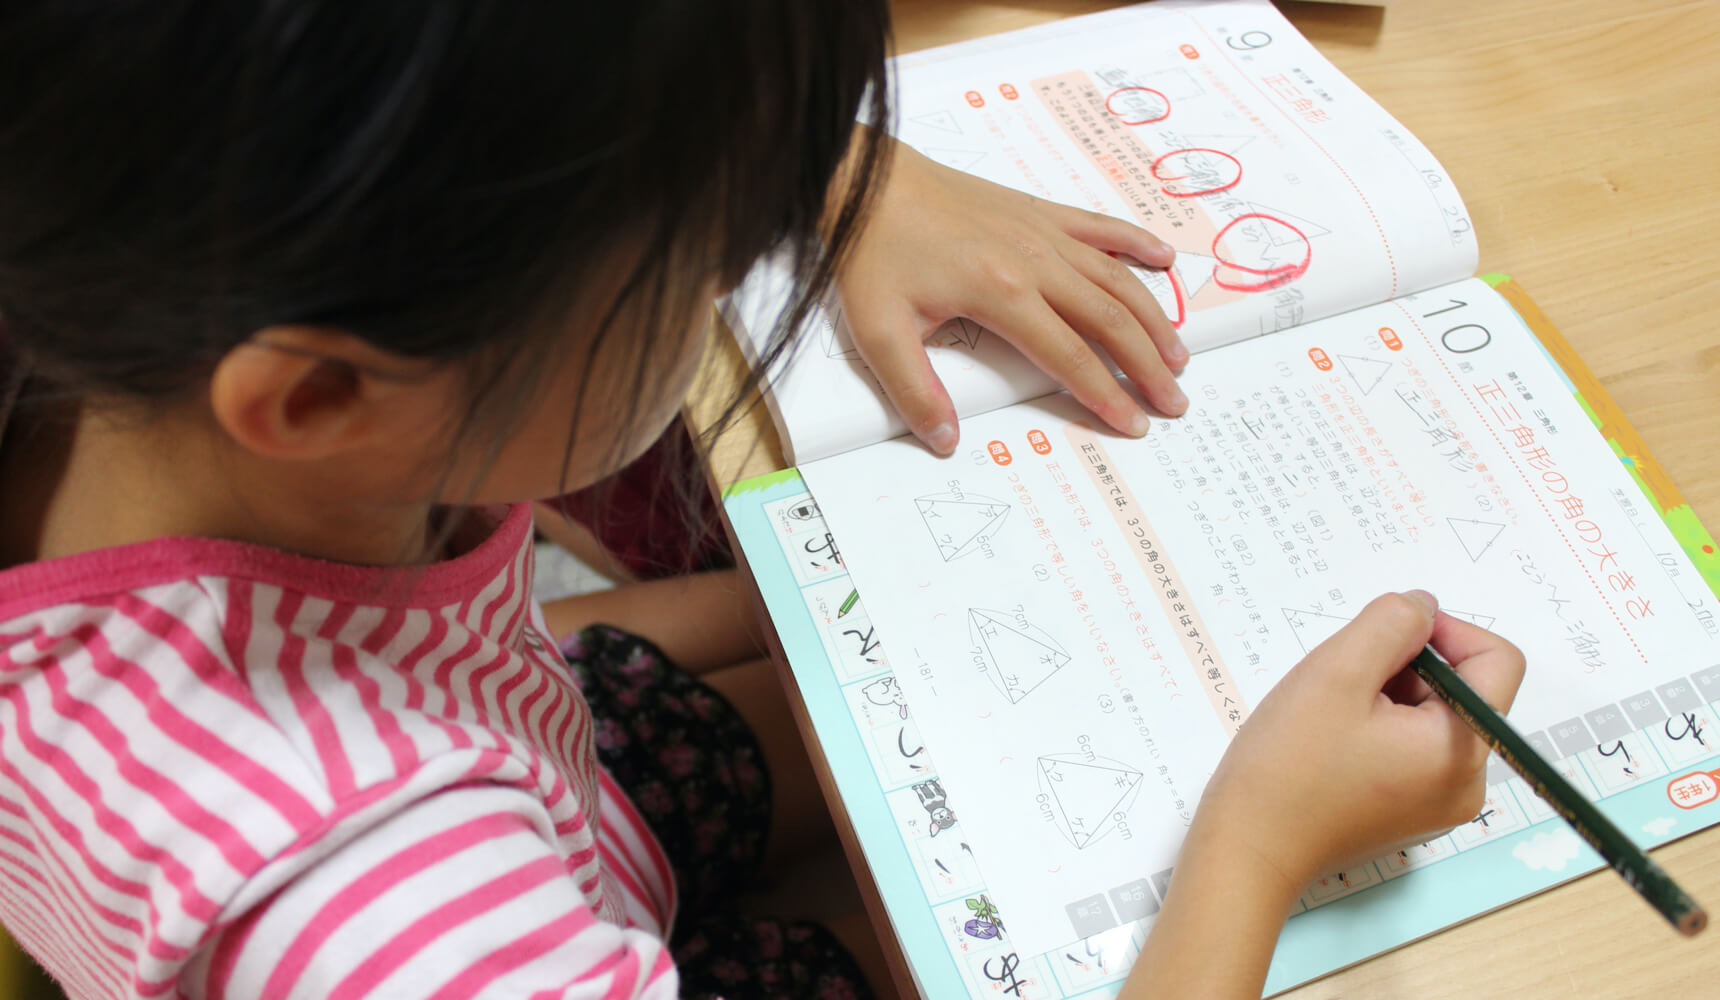 A young child in a red and white striped t-shirt sits at a desk and writes in a notebook